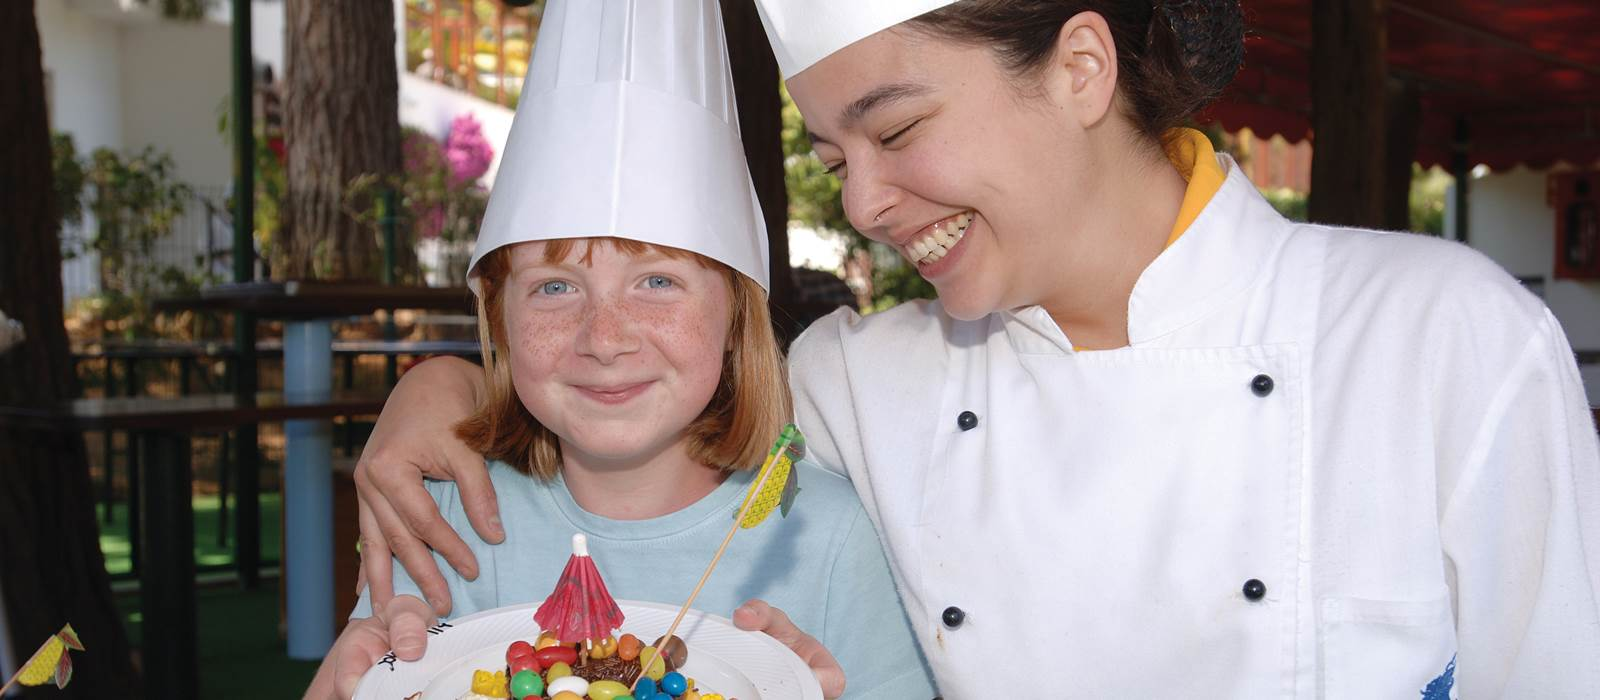 Chef and Child at the Kangaroo Kids Club at Penina Hotel and Golf Resort